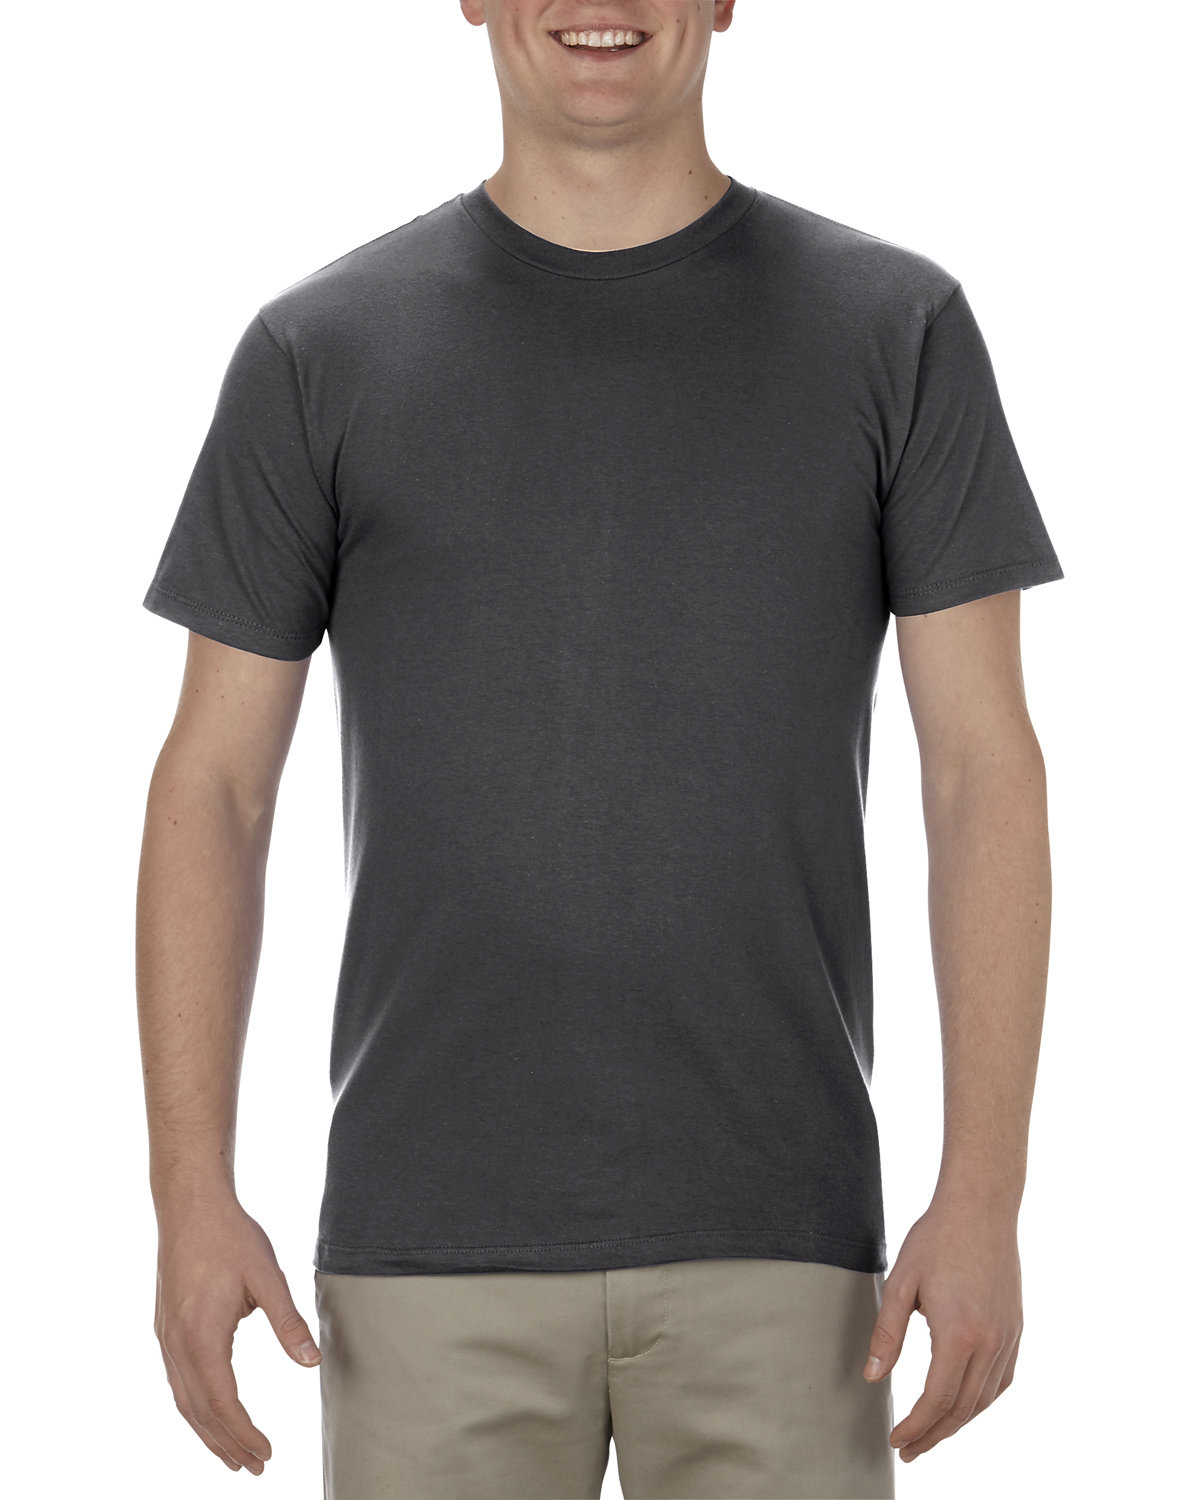 Alstyle Adult 4.3 oz., Ringspun Cotton T-Shirt CHARCOAL HEATHER